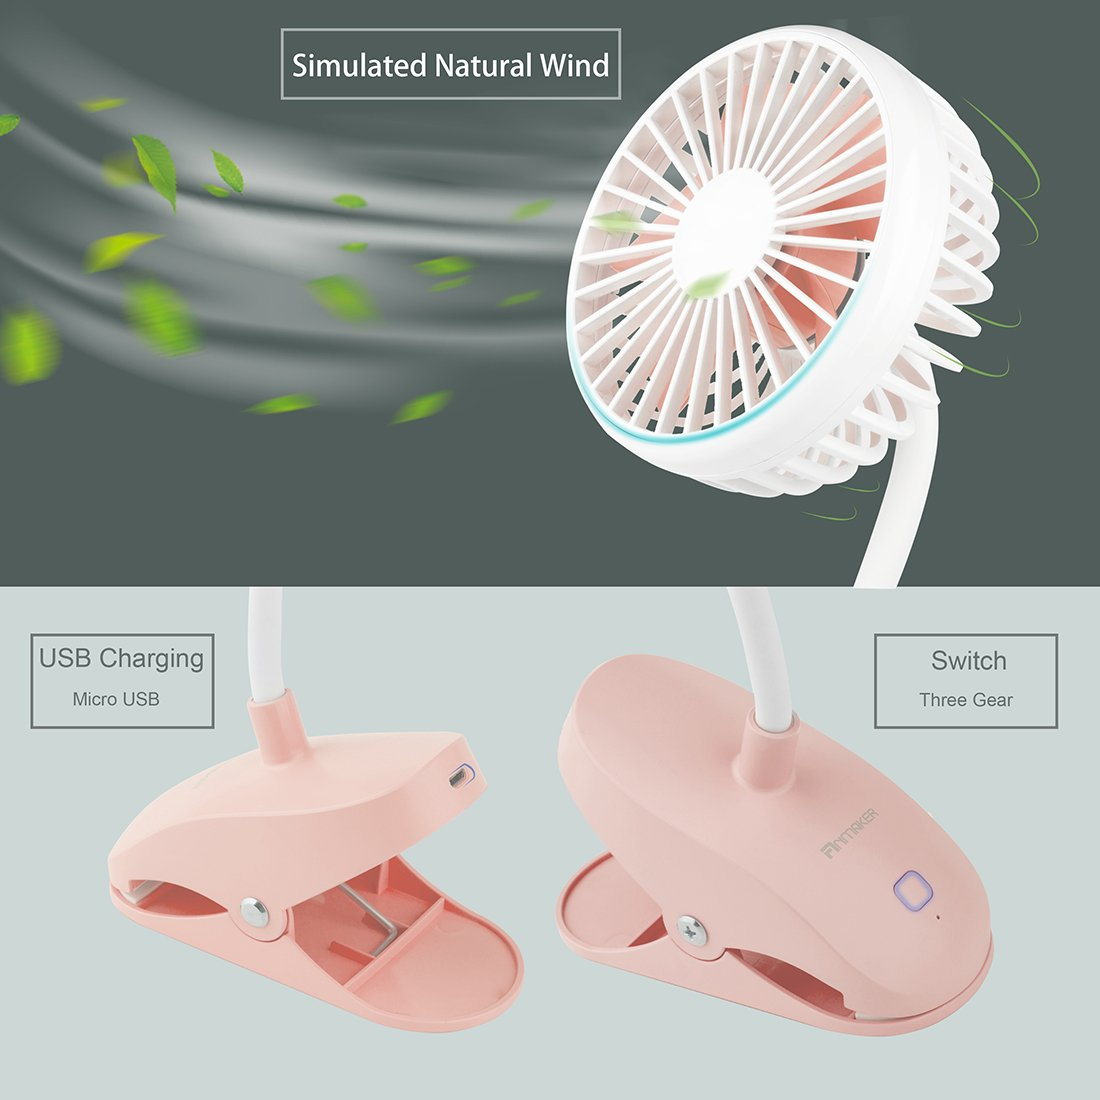 Anmaker Mini Baby Stroller Fan Clip on, 2000mAh Flexible Bent Portable Desk Personal Clip Cooling Fan Electric Pink with USB Charging Battery Operated 3 Speed for Baby,Office, Camping, Bedside, Beach by Anmaker (Image #4)